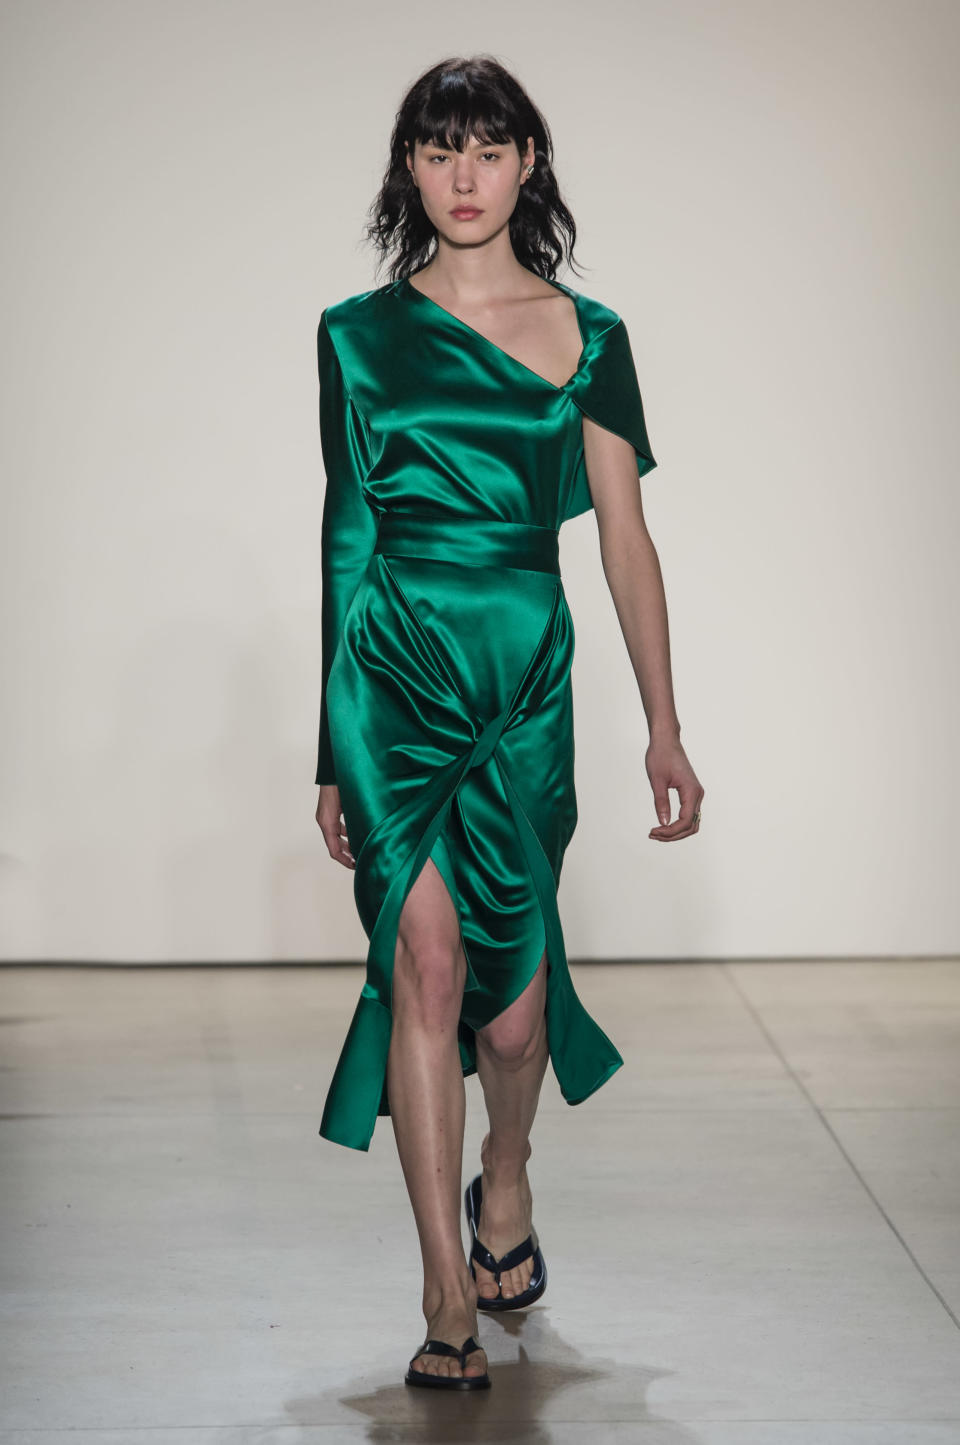 <p><i>Model wears an emerald green silk dress with high slit from the SS18 Dion Lee collection. (Photo: ImaxTree) </i></p>